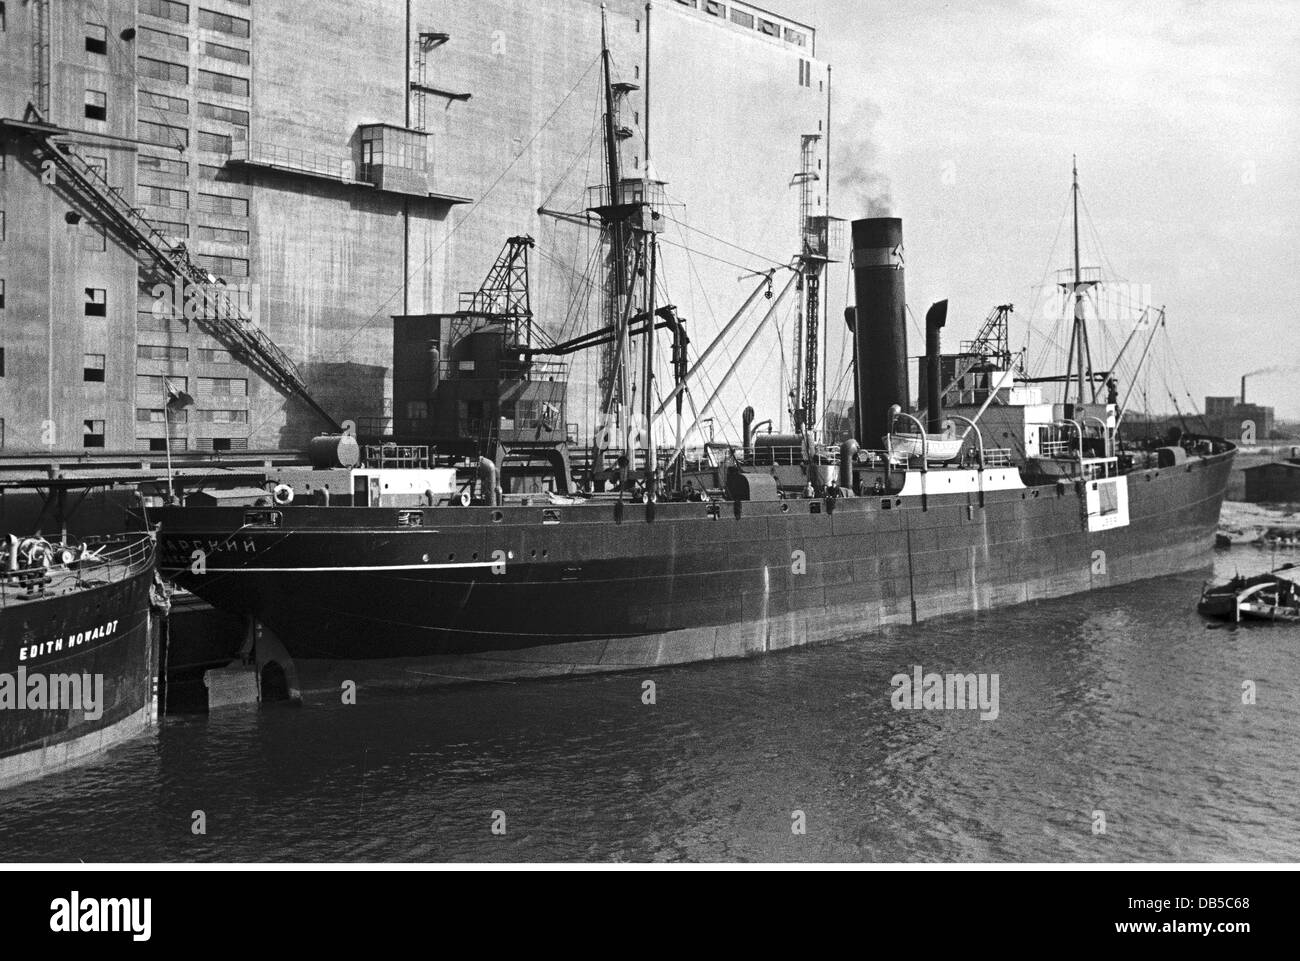 transport transportation navigation steam ships soviet freighter stock photo 58511664 alamy. Black Bedroom Furniture Sets. Home Design Ideas